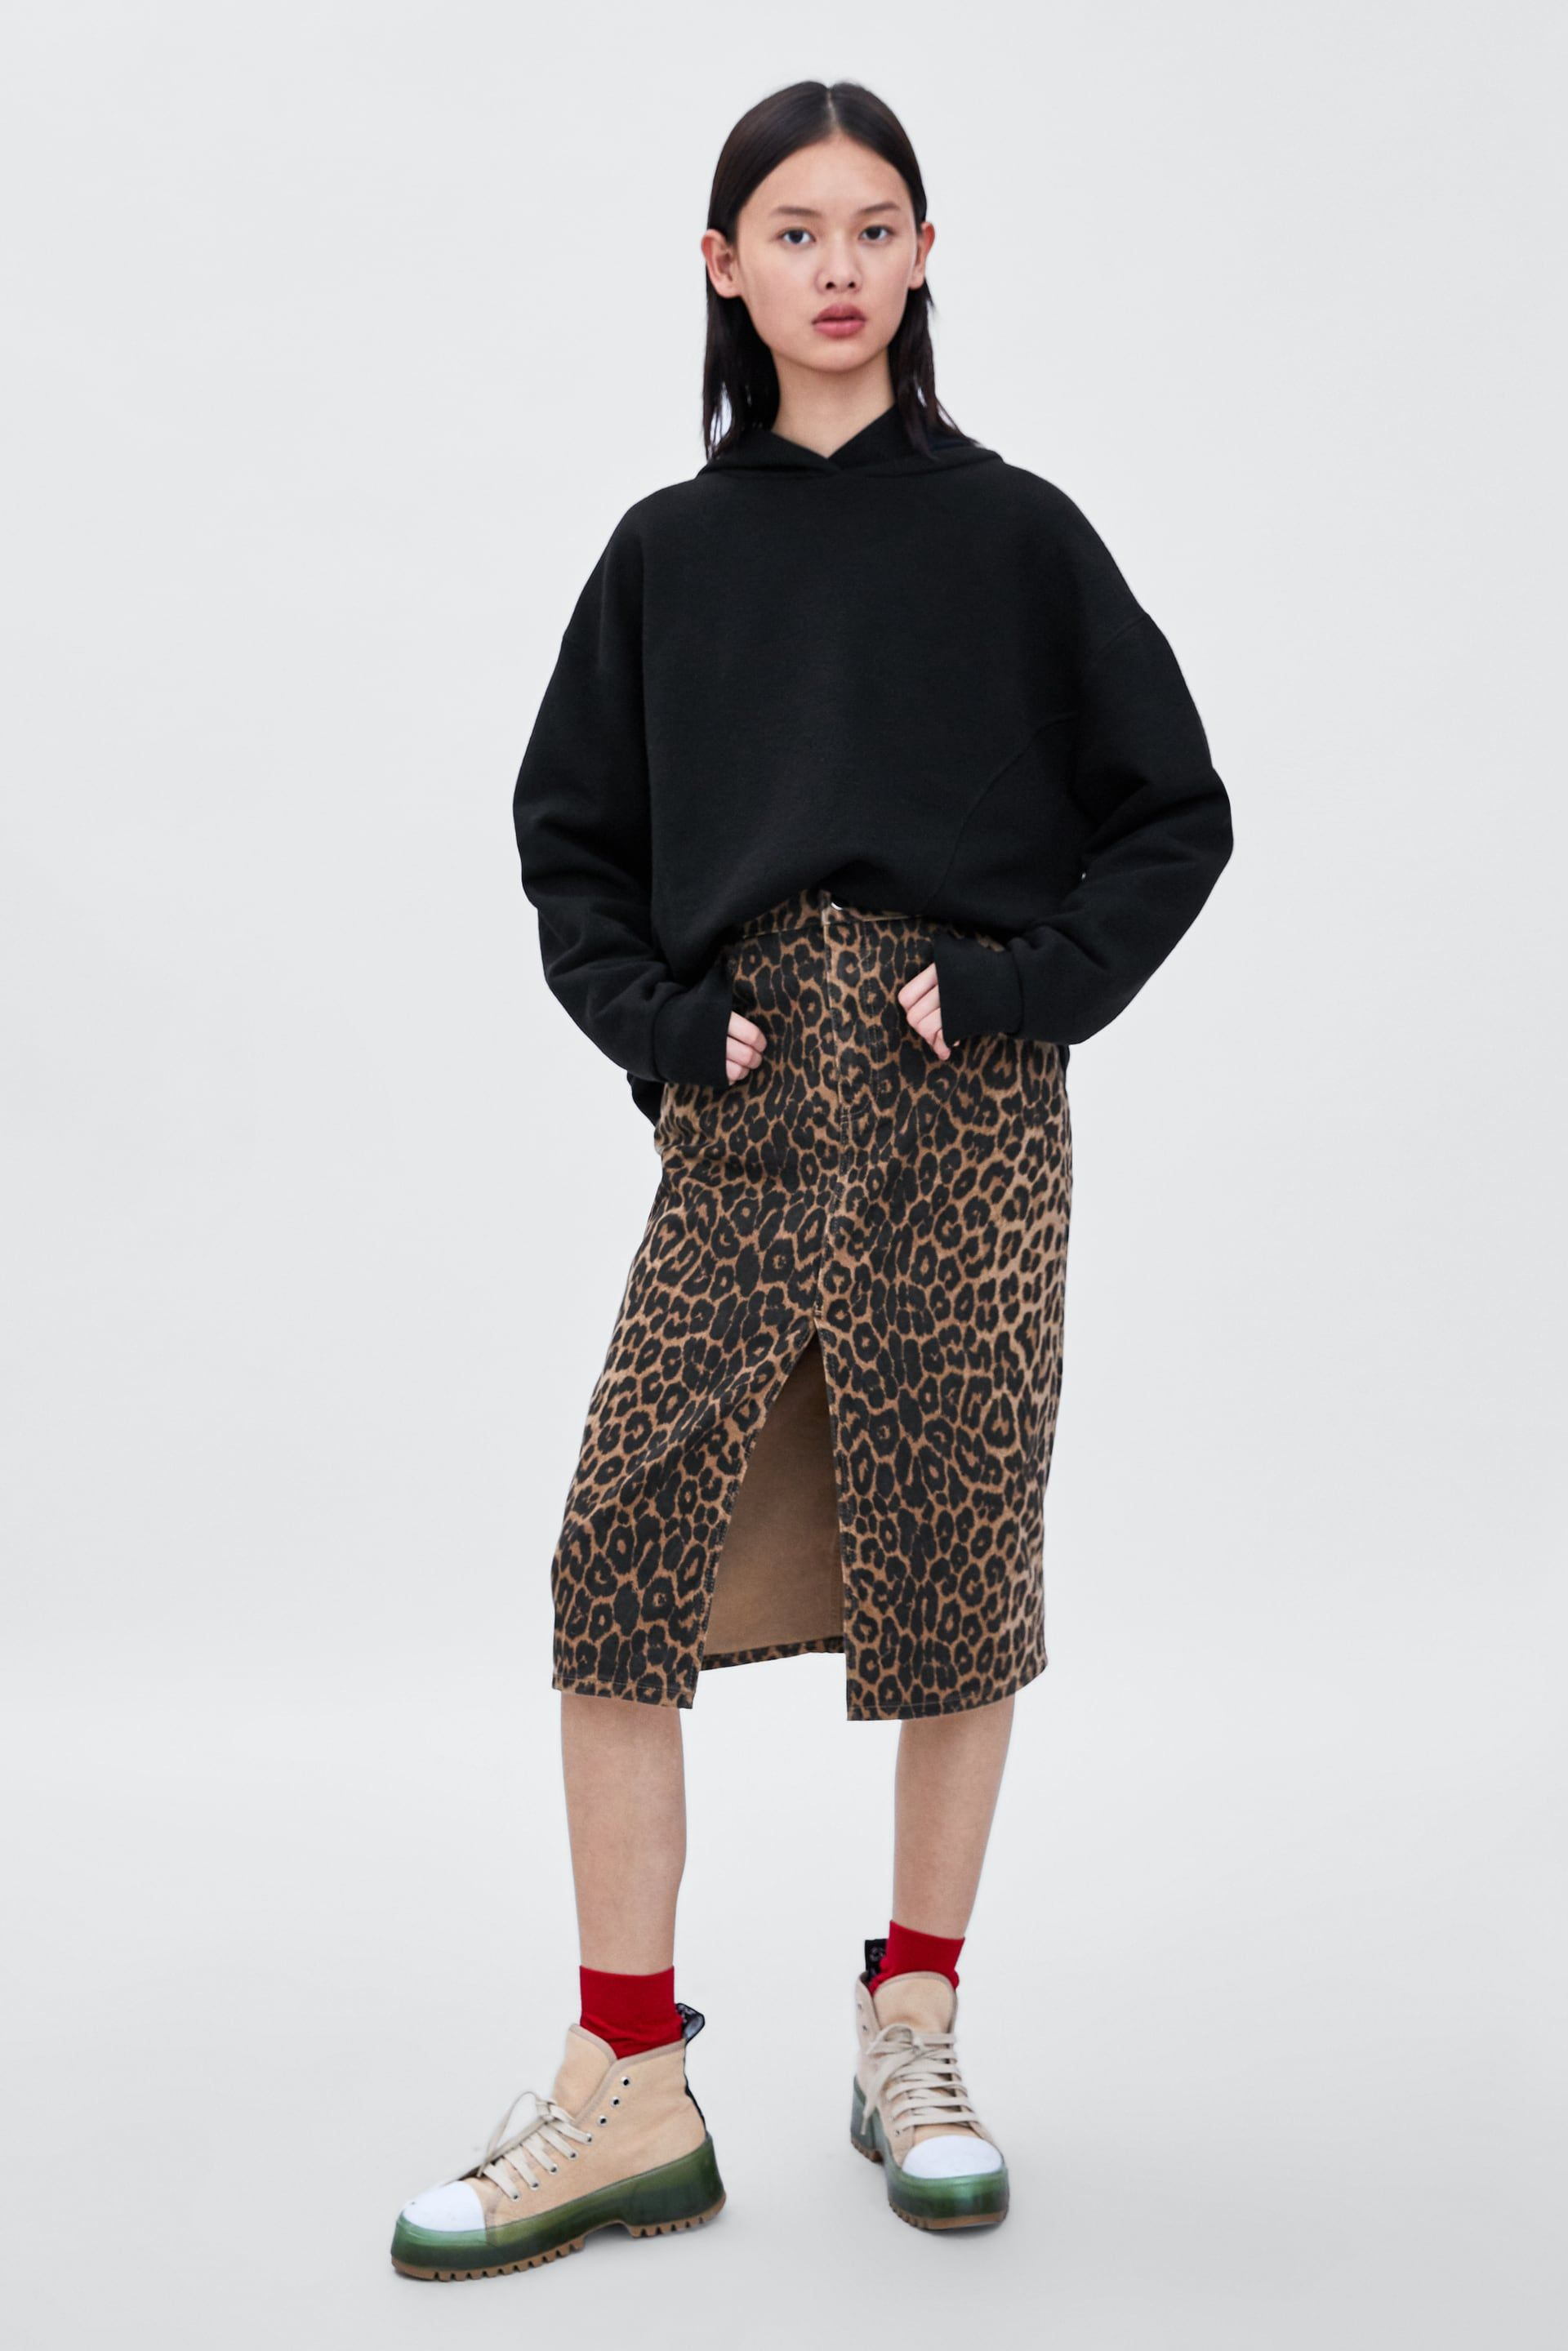 52563640c9 FALDA ESTAMPADO ANIMAL | Zara Spring 2018 collection | Leopard print ...